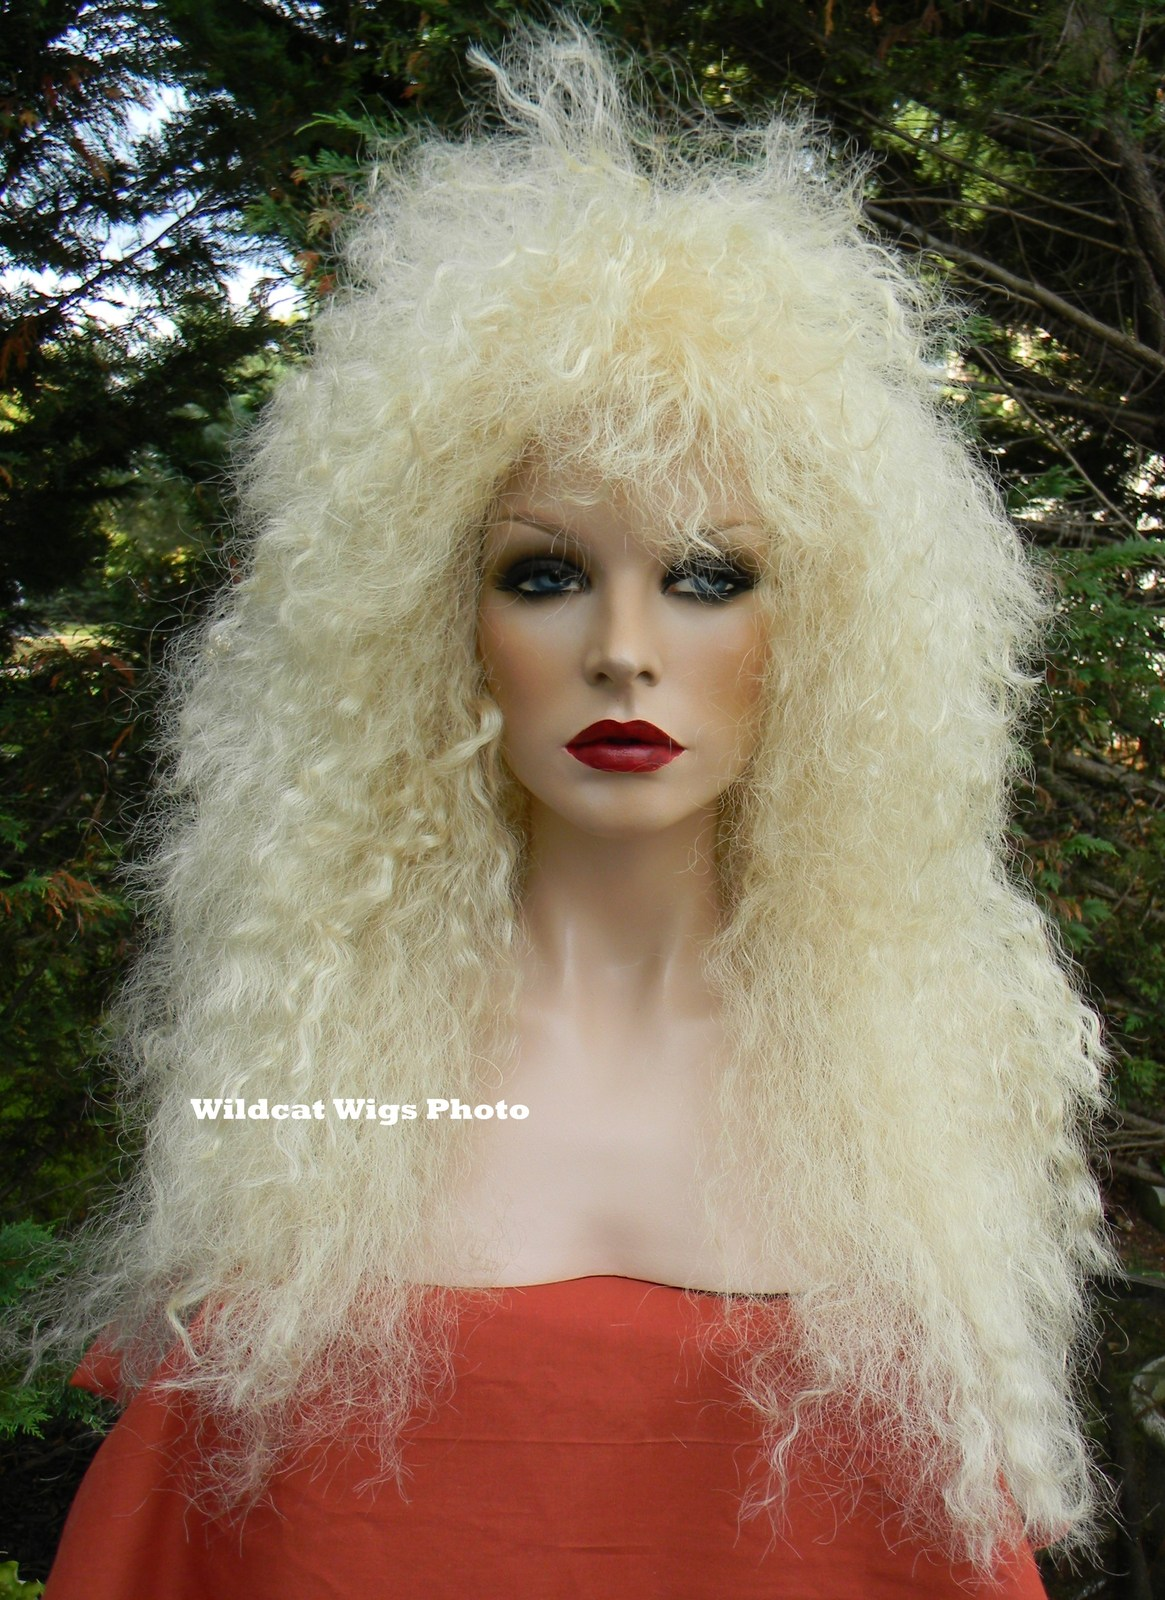 Darcinut costume wig 2 customer reviews and 2 listings heavy metal better costume wig for men and women stevie nicks rocker 80s 2999 publicscrutiny Image collections